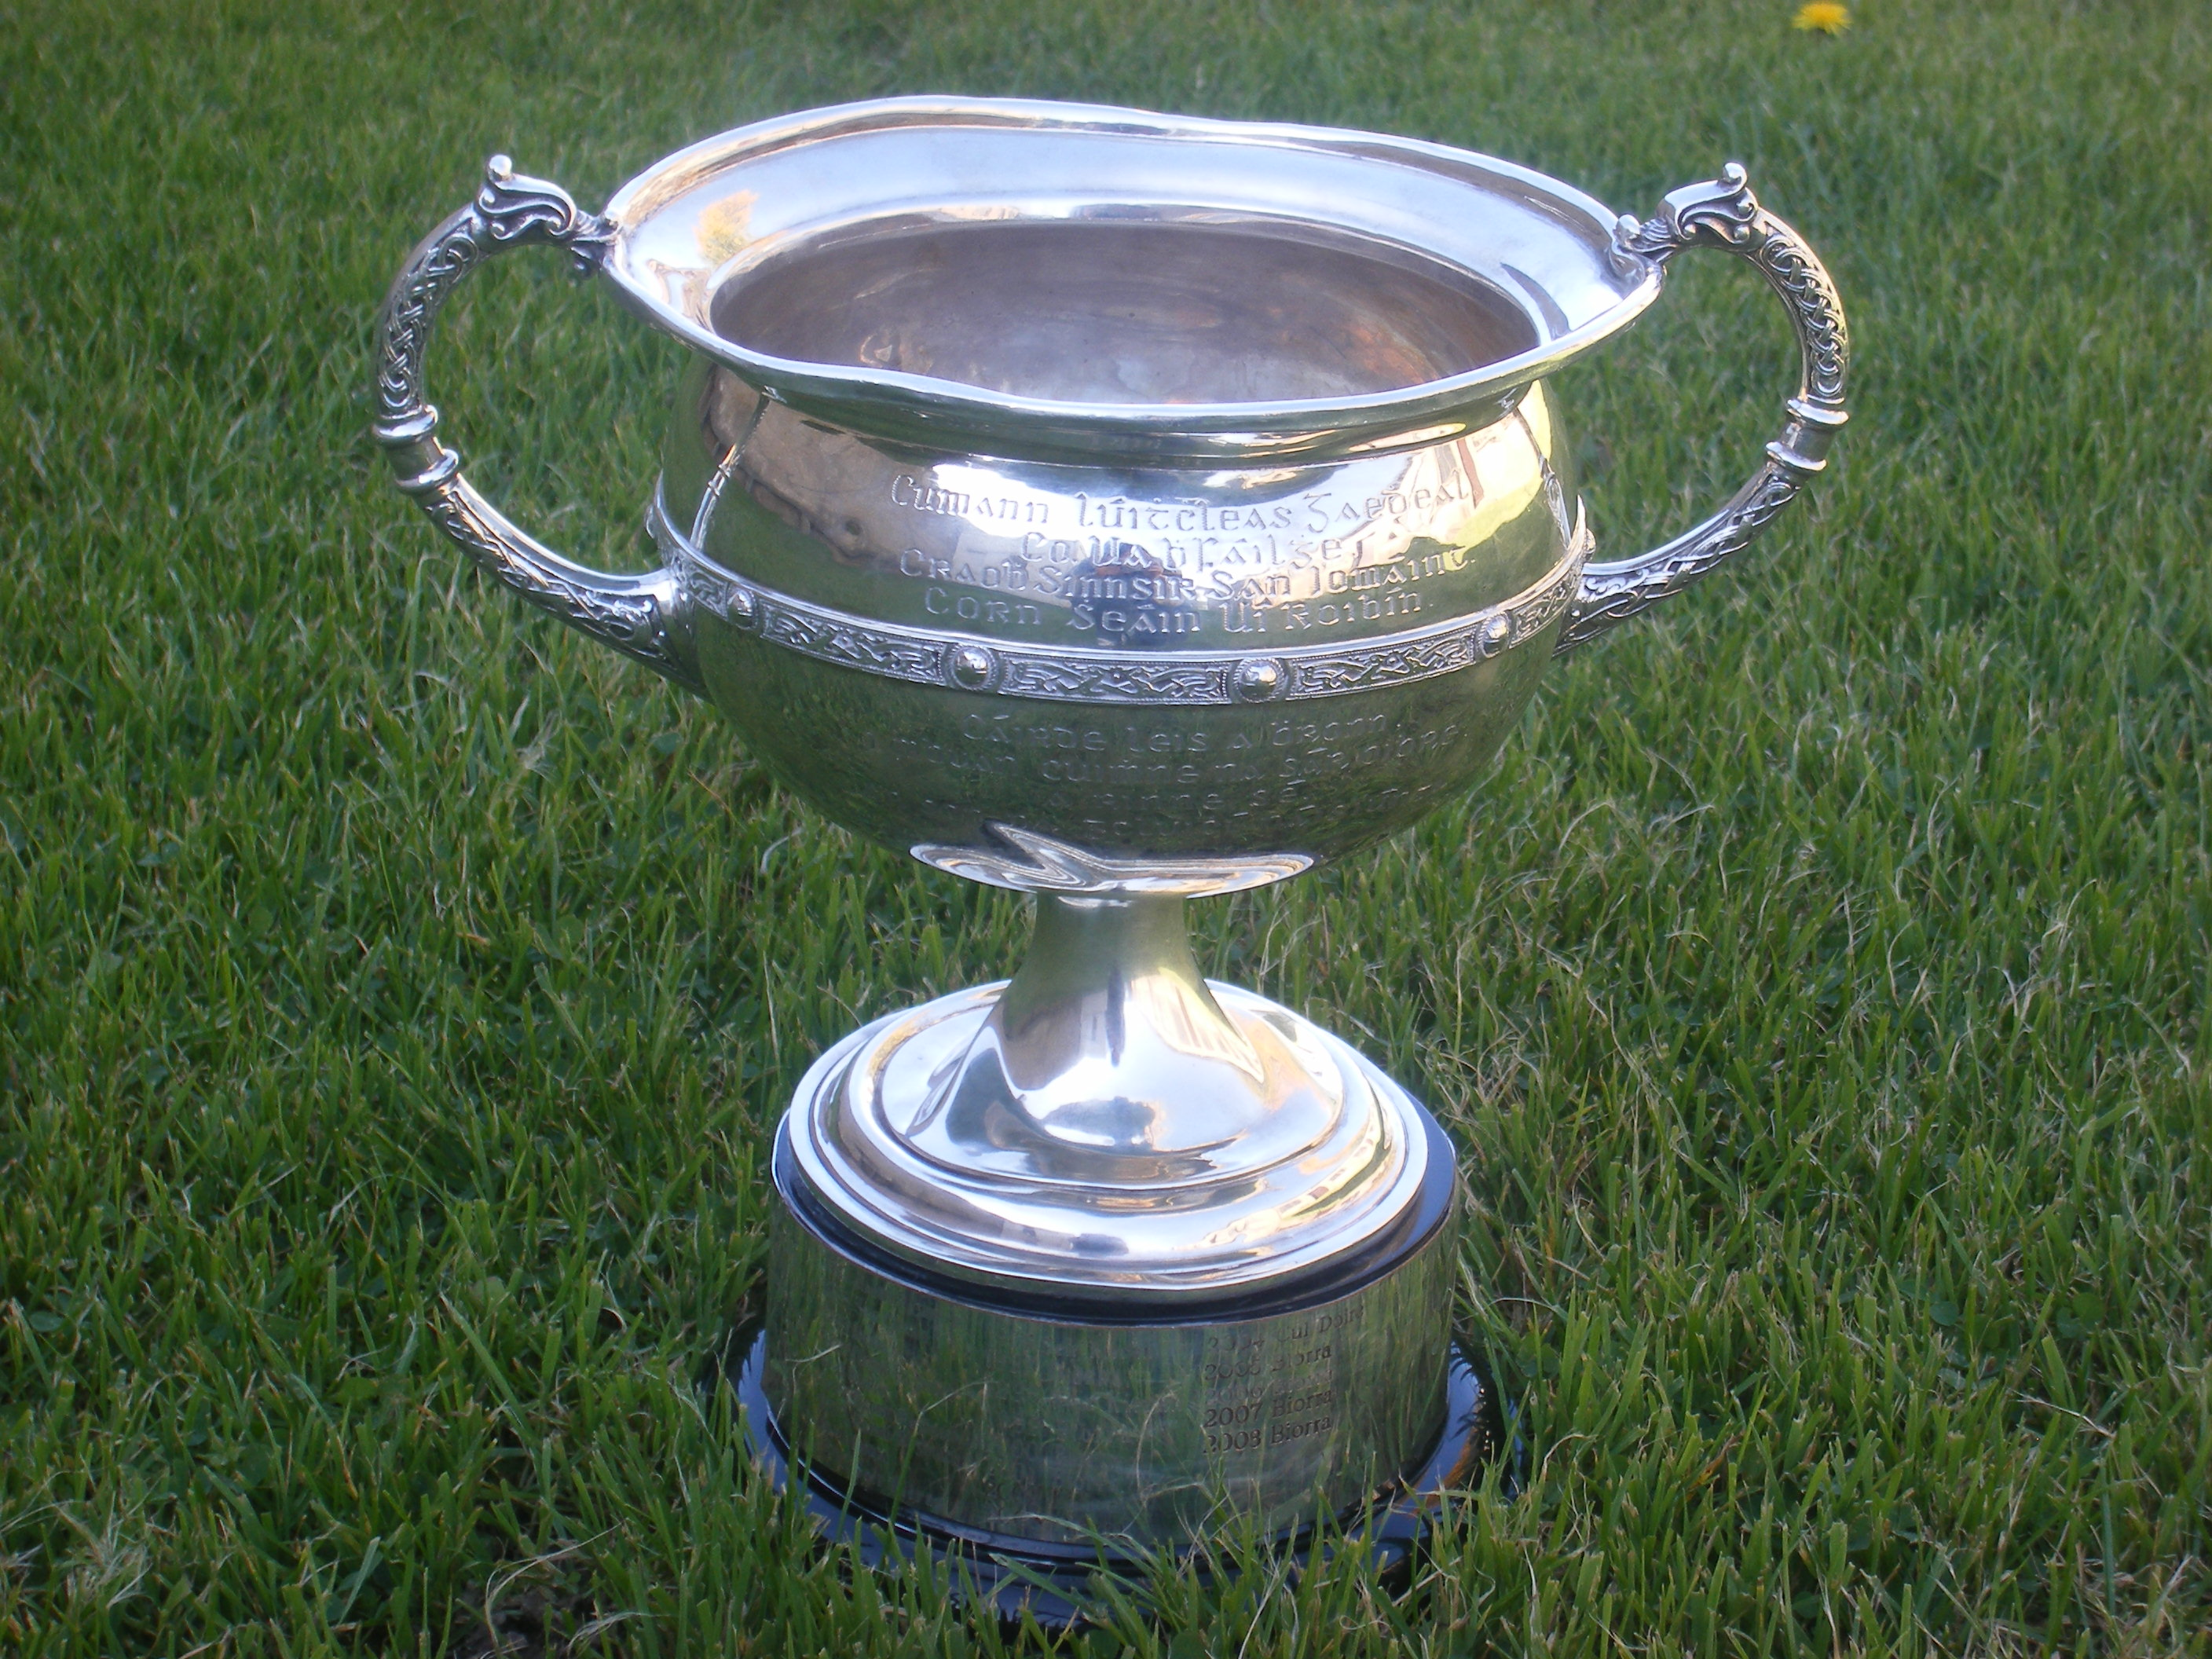 Battle for Sean Robbins Cup Resumes This Weekend